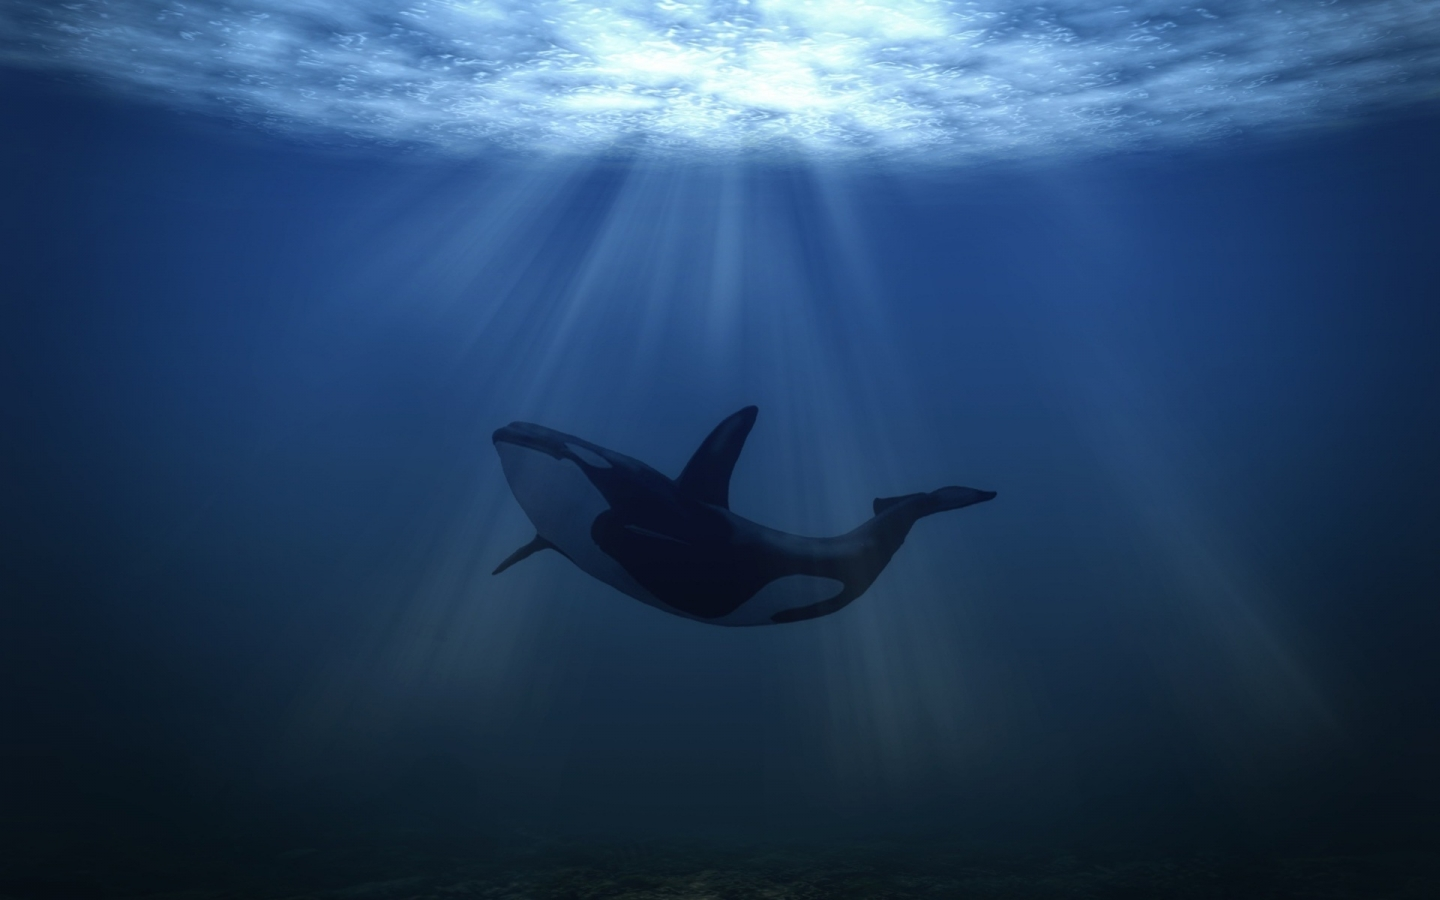 Big Whale Underwater for 1440 x 900 widescreen resolution